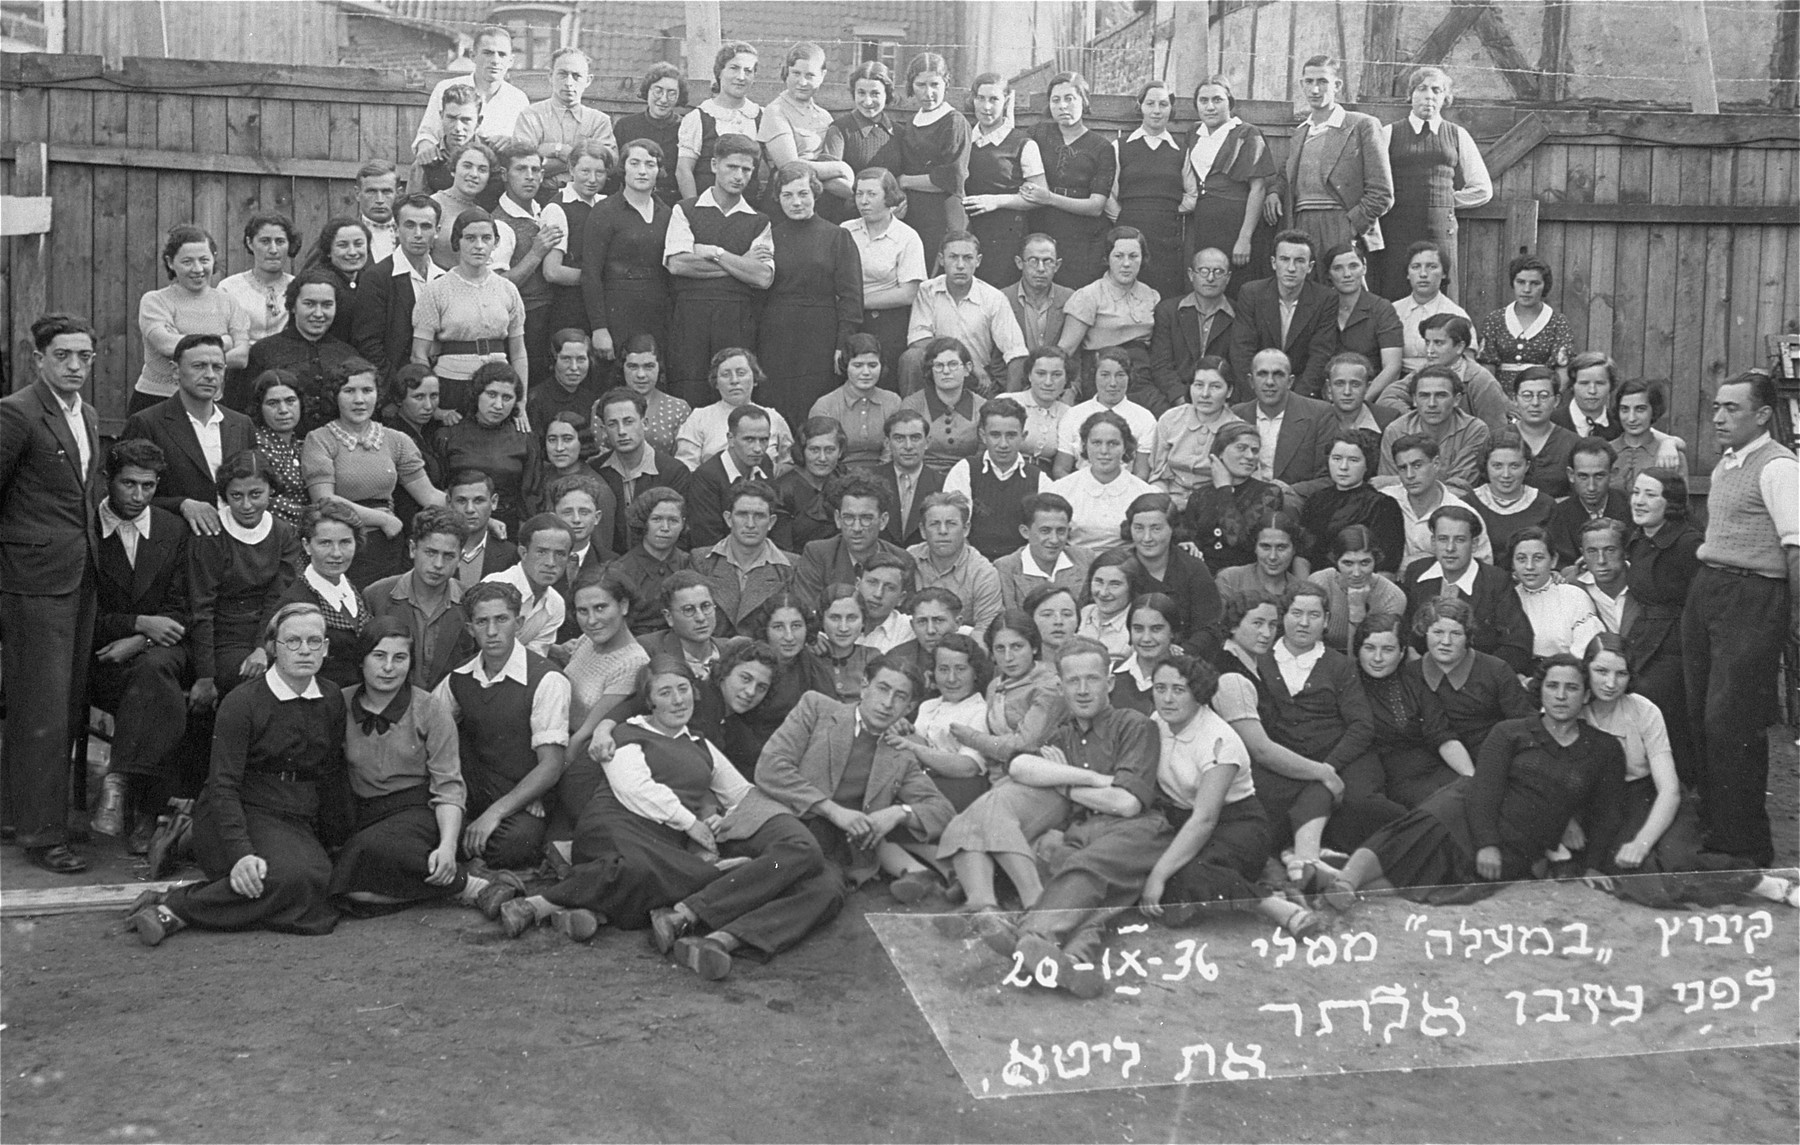 Group portrait of the kibbutz hachshara, Bemaaleh, taken on the occasion of the departure of one of its members.    Pictured at the far left is Eliezer Kaplan, the donor's father.